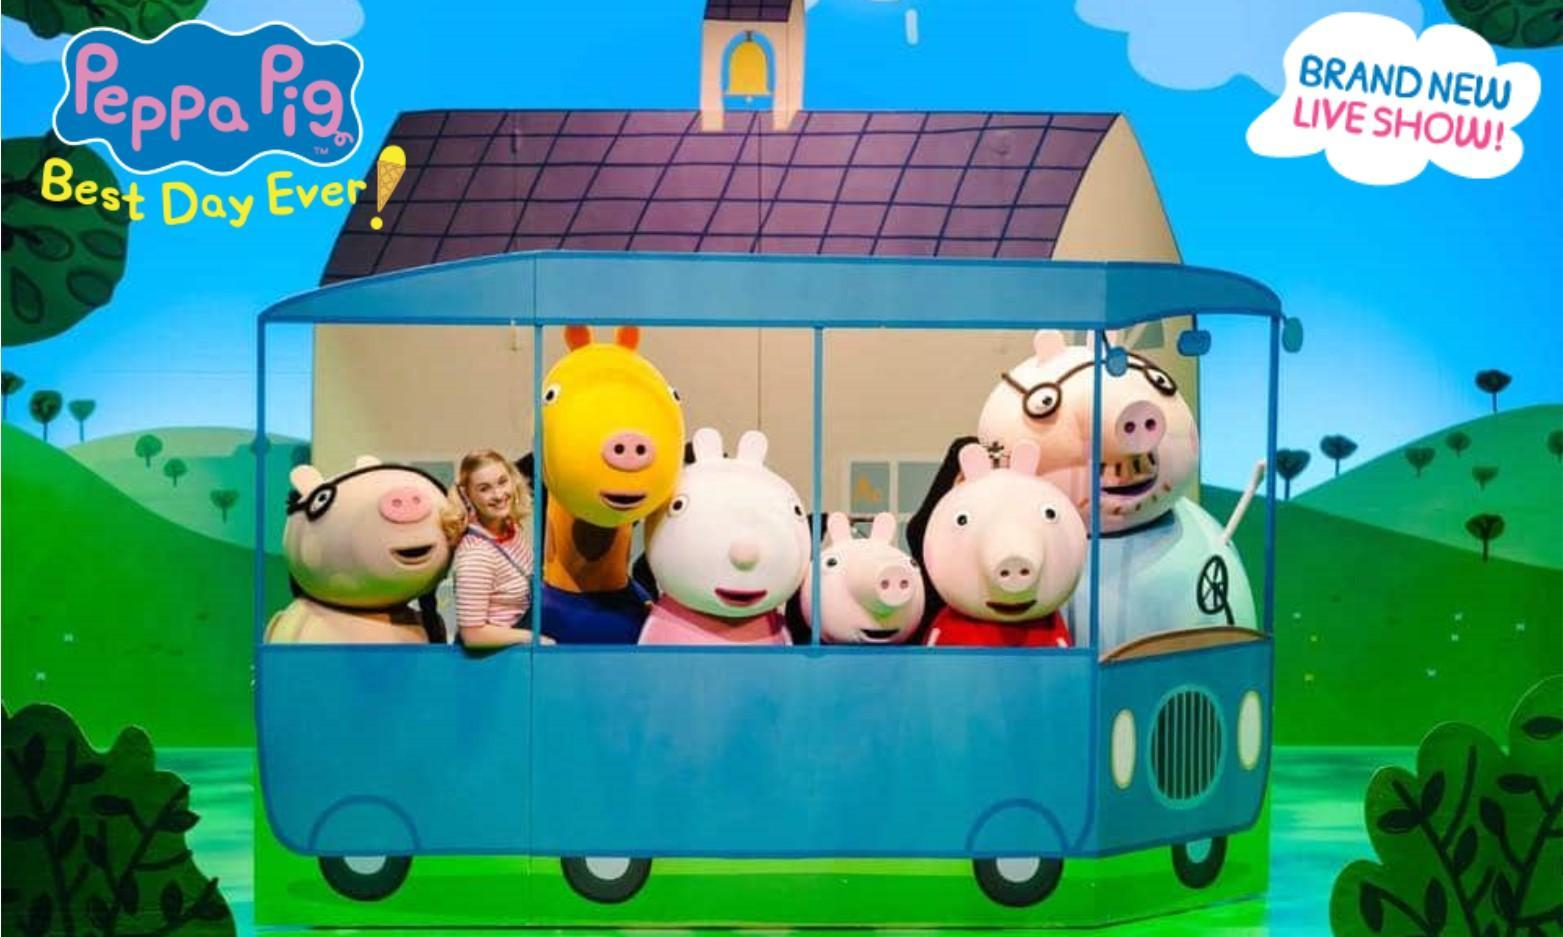 Peppa Pig Best Day Ever at Swansea Grand Theatre